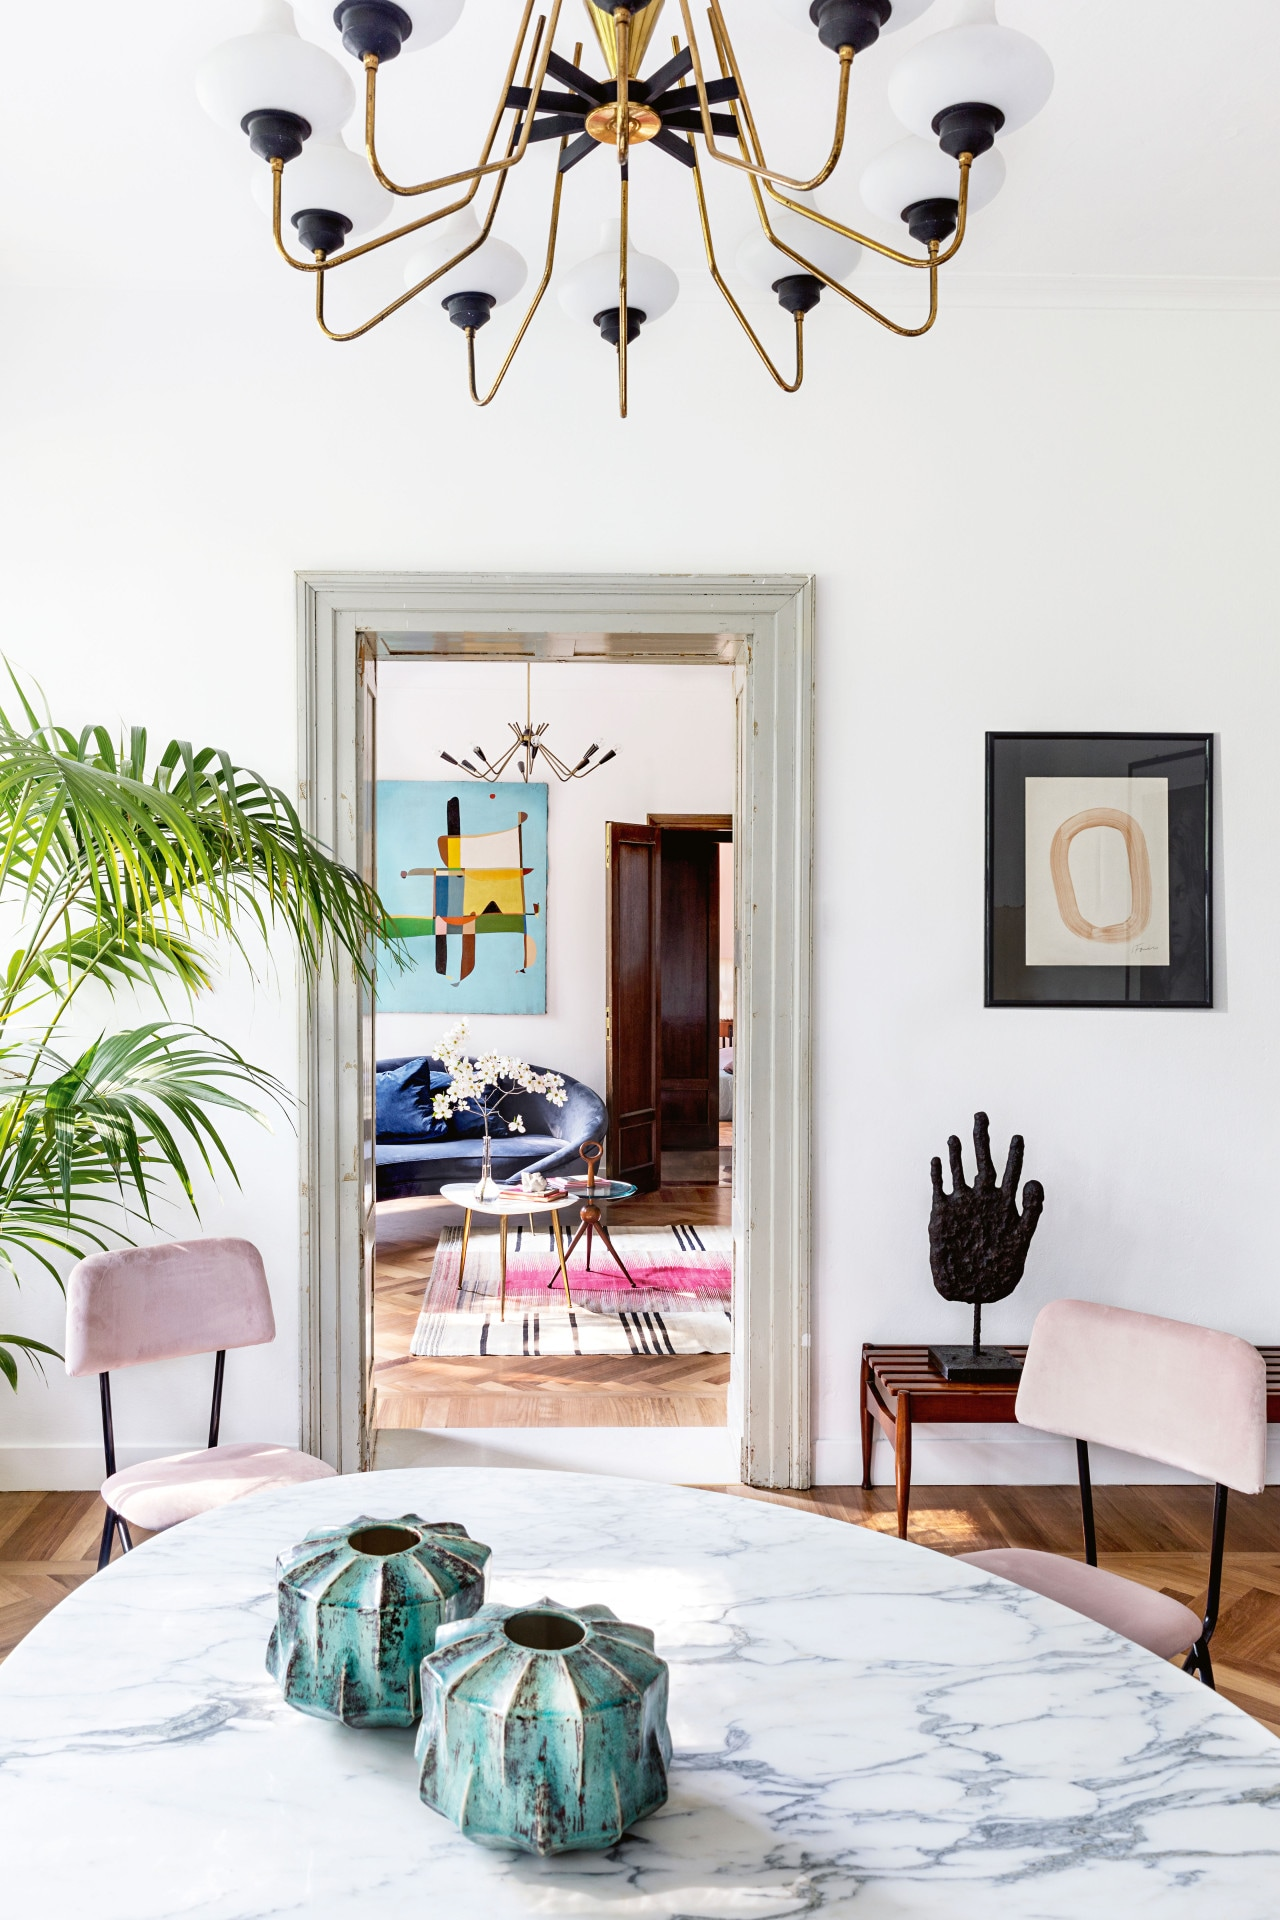 House tour: an Italian shoe factory turned into a home and studio